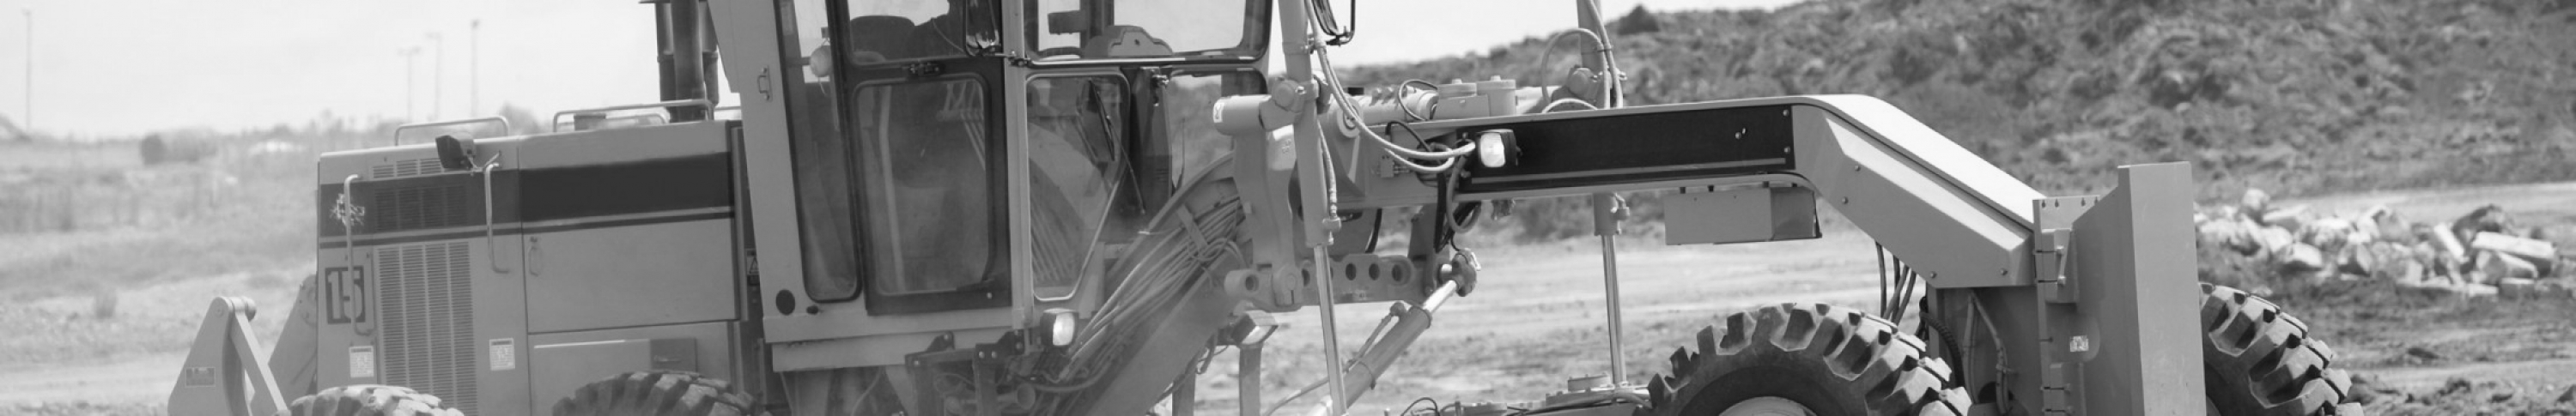 Sears Motor Grader Products. Picture of a motor grader working.